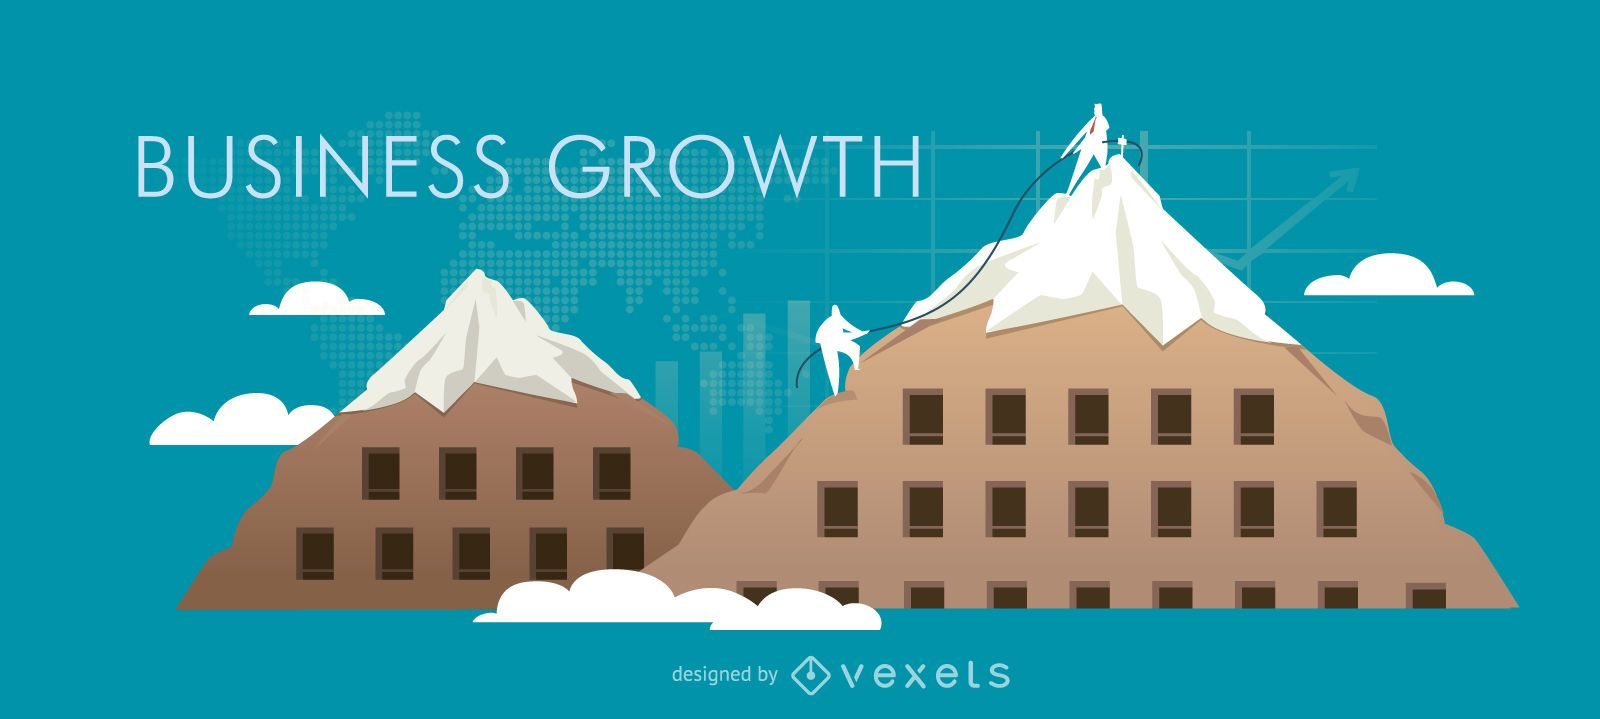 Business growth banner illustration